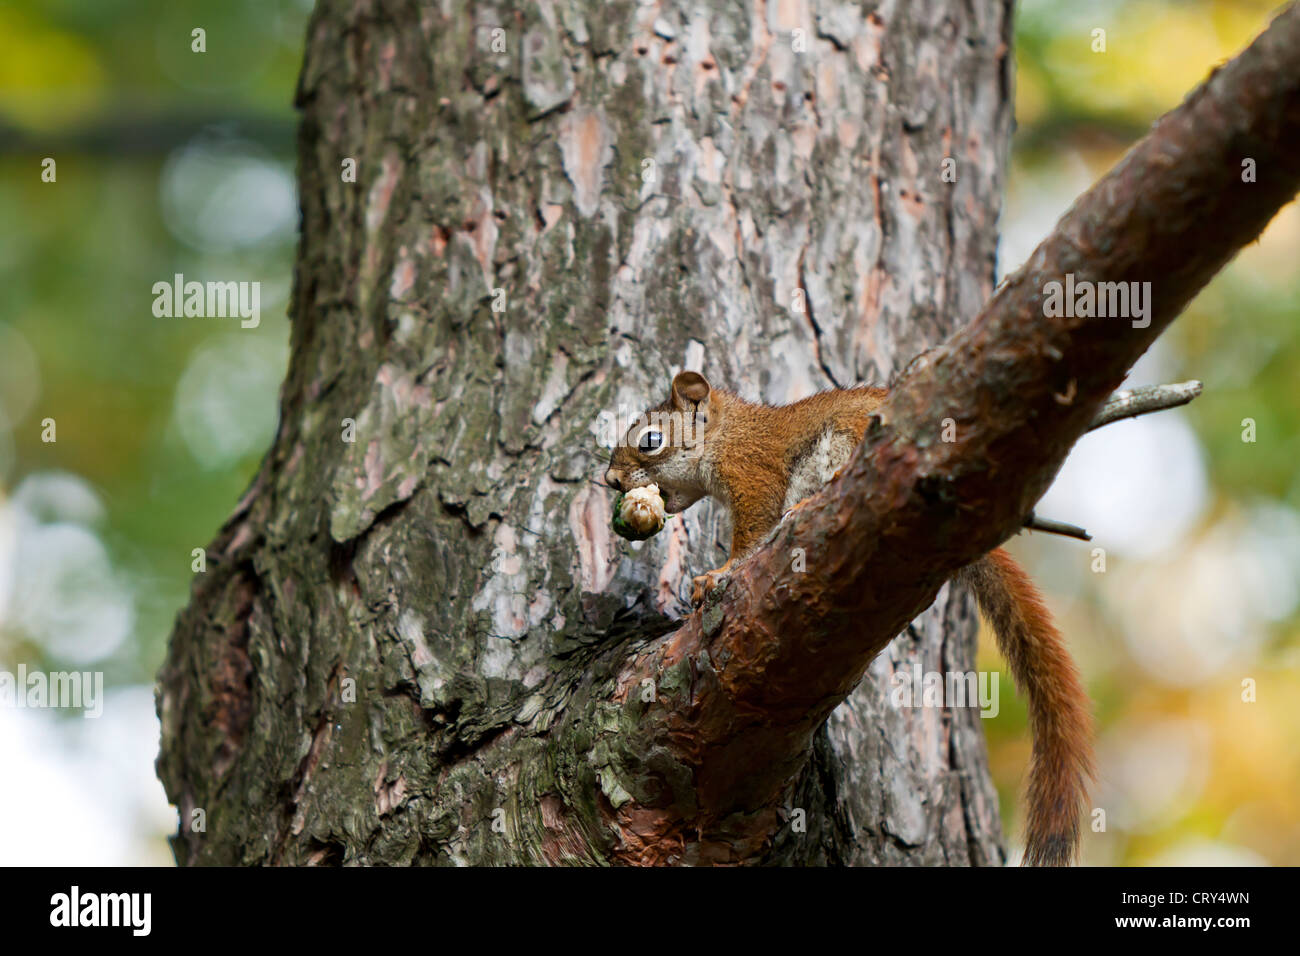 Squirrel eating a pine cone,Sciuridae - Stock Image